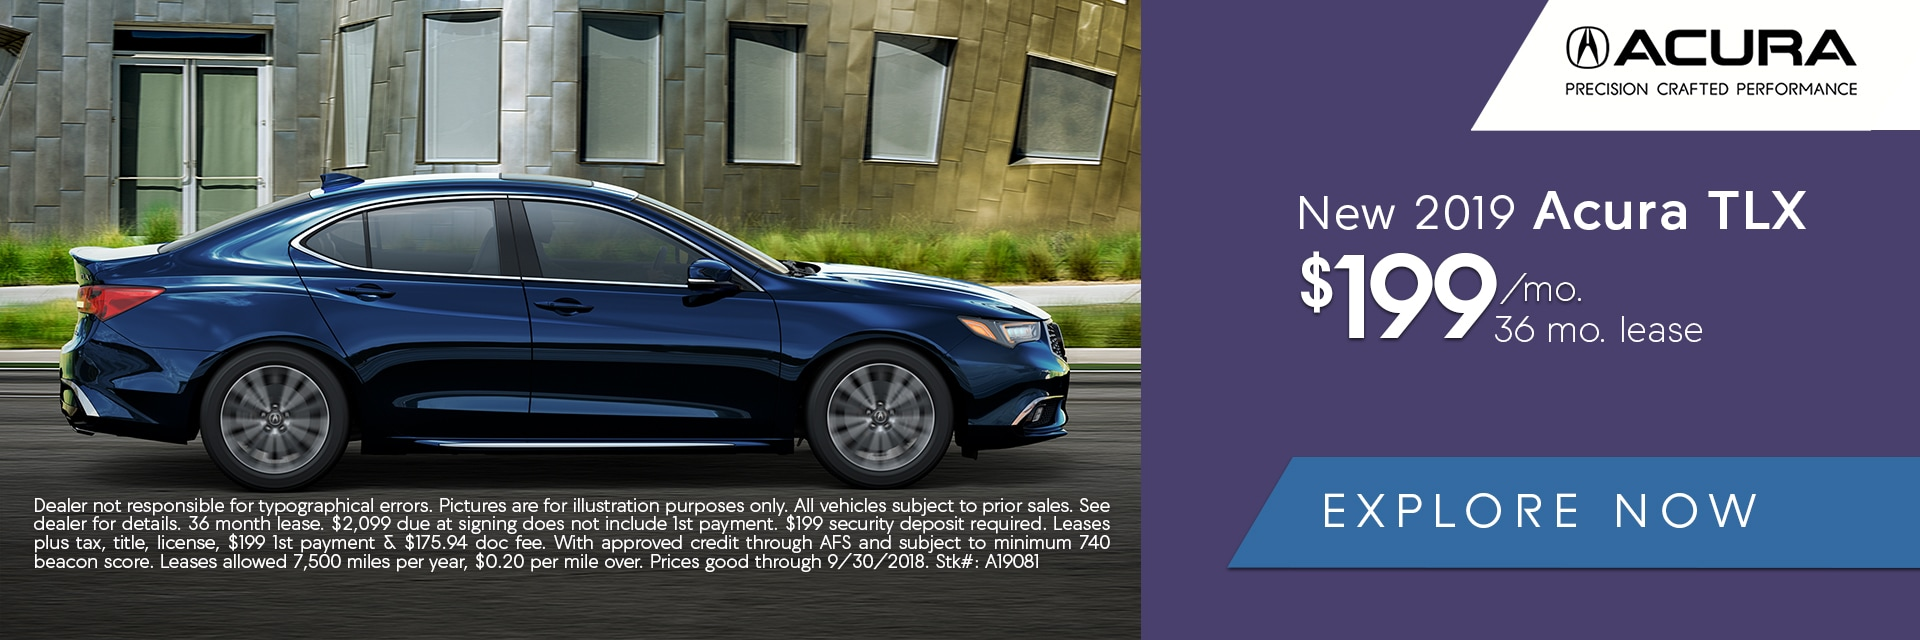 Acura TLX Lease Deal